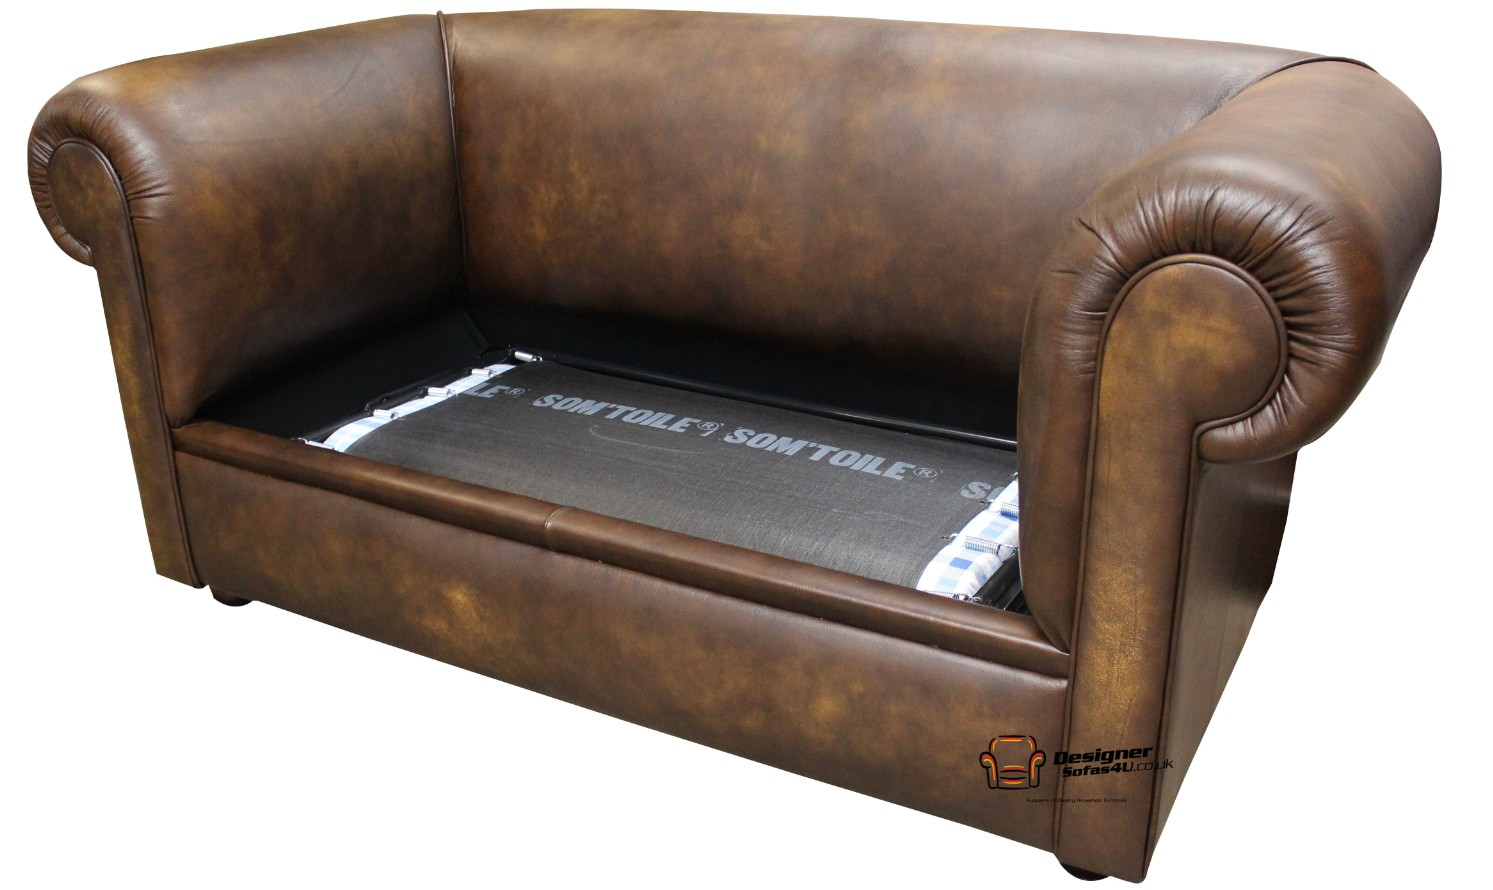 Admirable Buy 1930S Chesterfield Sofa Bed In Antique Gold Leather Dailytribune Chair Design For Home Dailytribuneorg